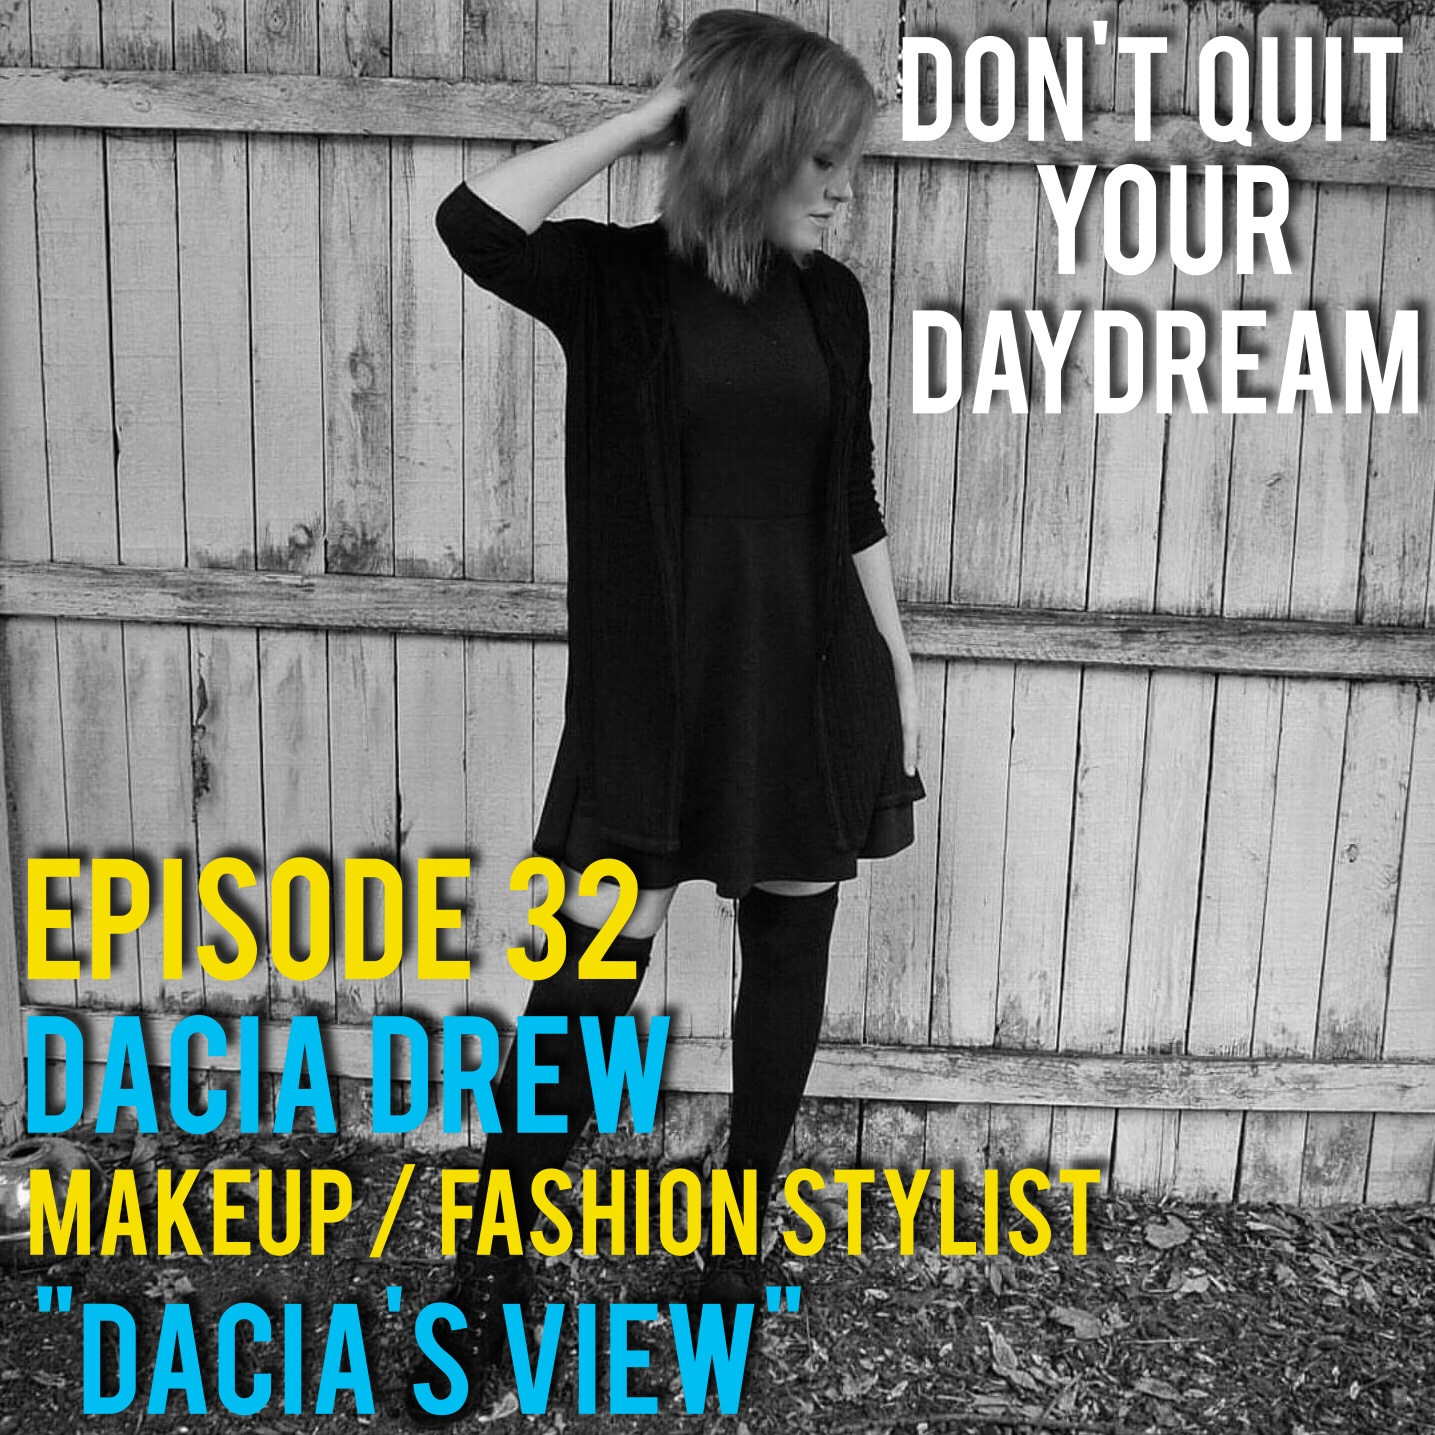 "Episode 32 we sit down with fashion and hair stylist, Dacia Drew. Dacia has just launched her own blog ""Dacia's View"" where she puts a focus on positivity and self-improvement. We discuss building a brand from the ground up and the importance of friends and family along the way. Follow her along in order to add a little bit of optimism into your day:  http://daciasview.com/   http://www.imgrum.net/user/daciasview/3676709518      Song of the week is ""Chandelier"" from the wonderful hip hop artist, Sleepyhead. Sleepyhead's debut album ""The God That Follows"" achieves at being both cerebral and catchy. Don't just take my word for it, download it for yourself:  https://sleepyheadss.bandcamp.com/"